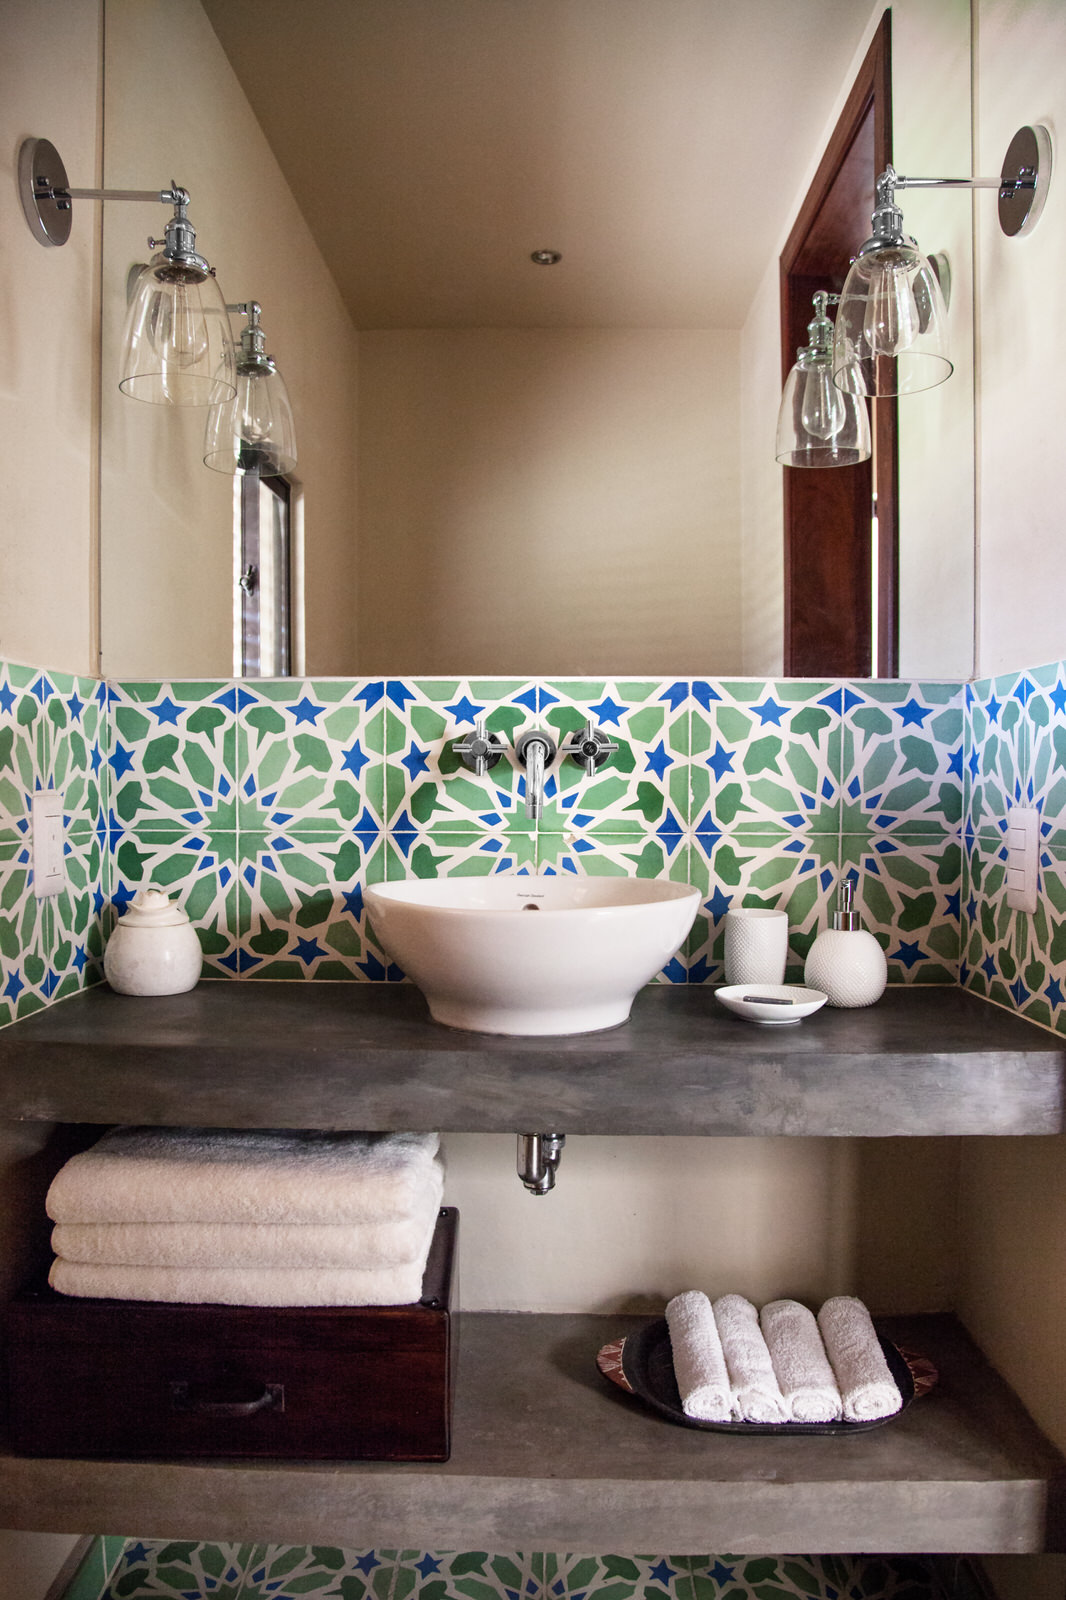 backsplash bathroom wall the and decorative by eng kitchen cassoria tiles brixia smart